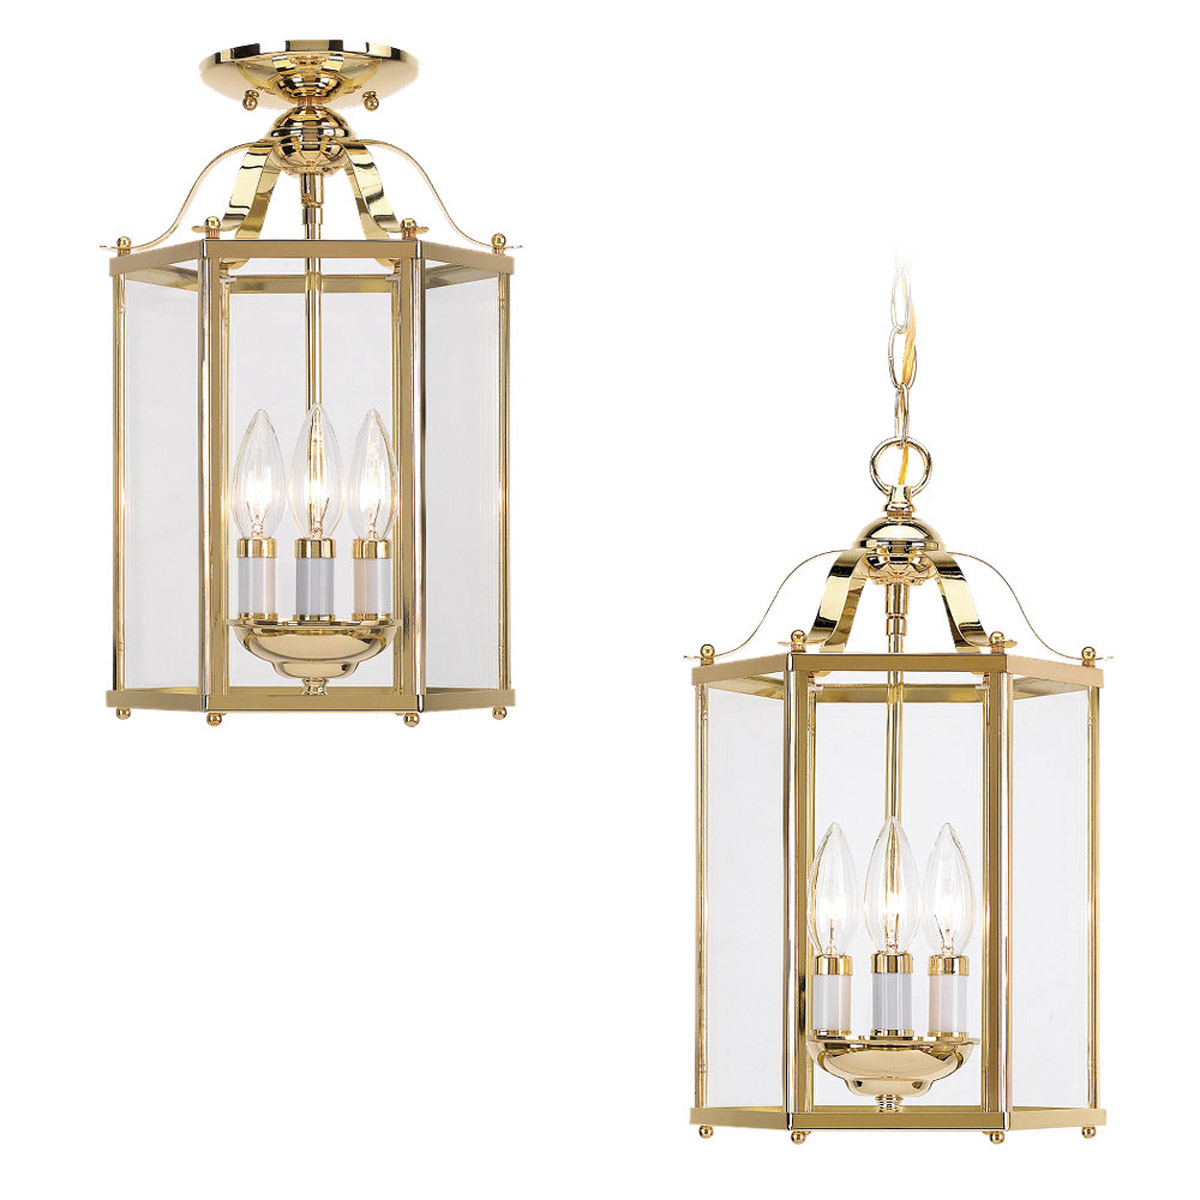 Sea Gull Lighting Bretton 3 Light Pendant Convertible in Polished Brass 5231-02 photo